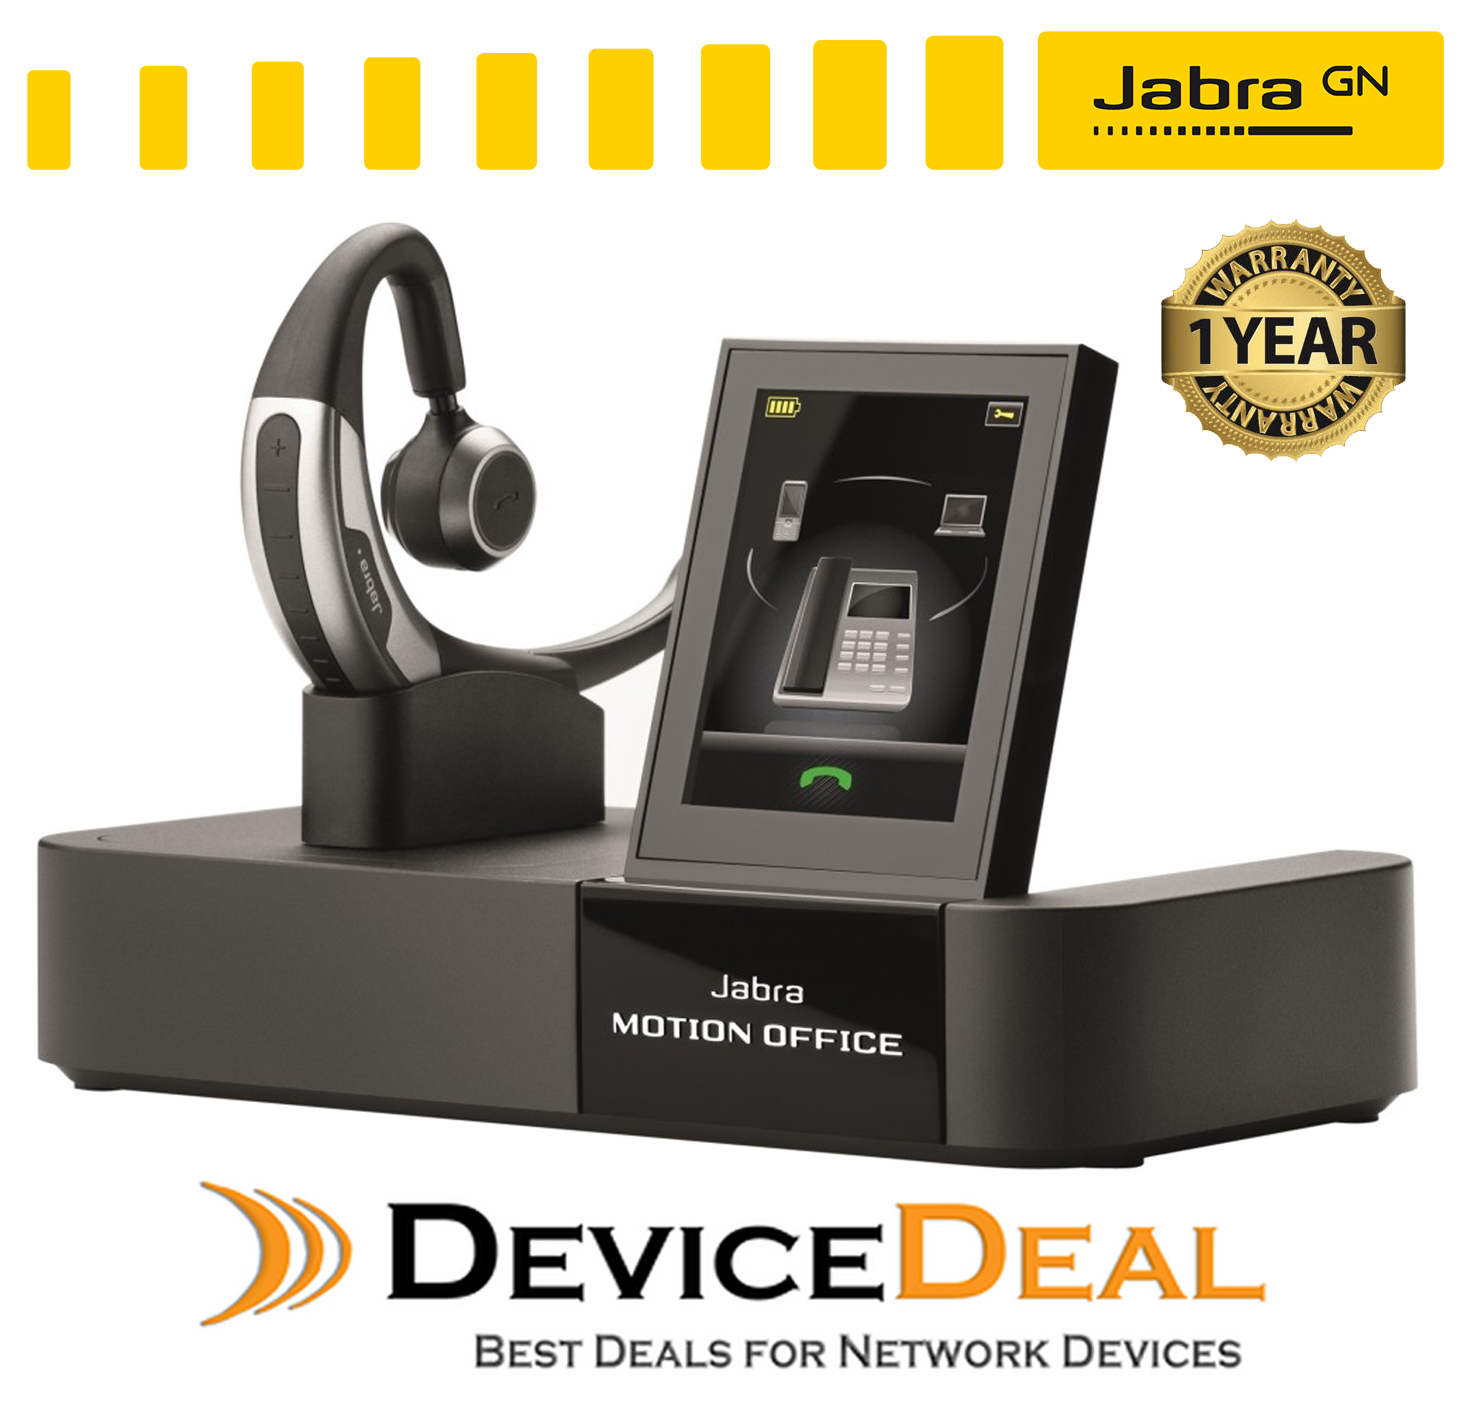 887605f3da3 Jabra MOTION OFFICE MS Bluetooth Headset with touch screen base ...